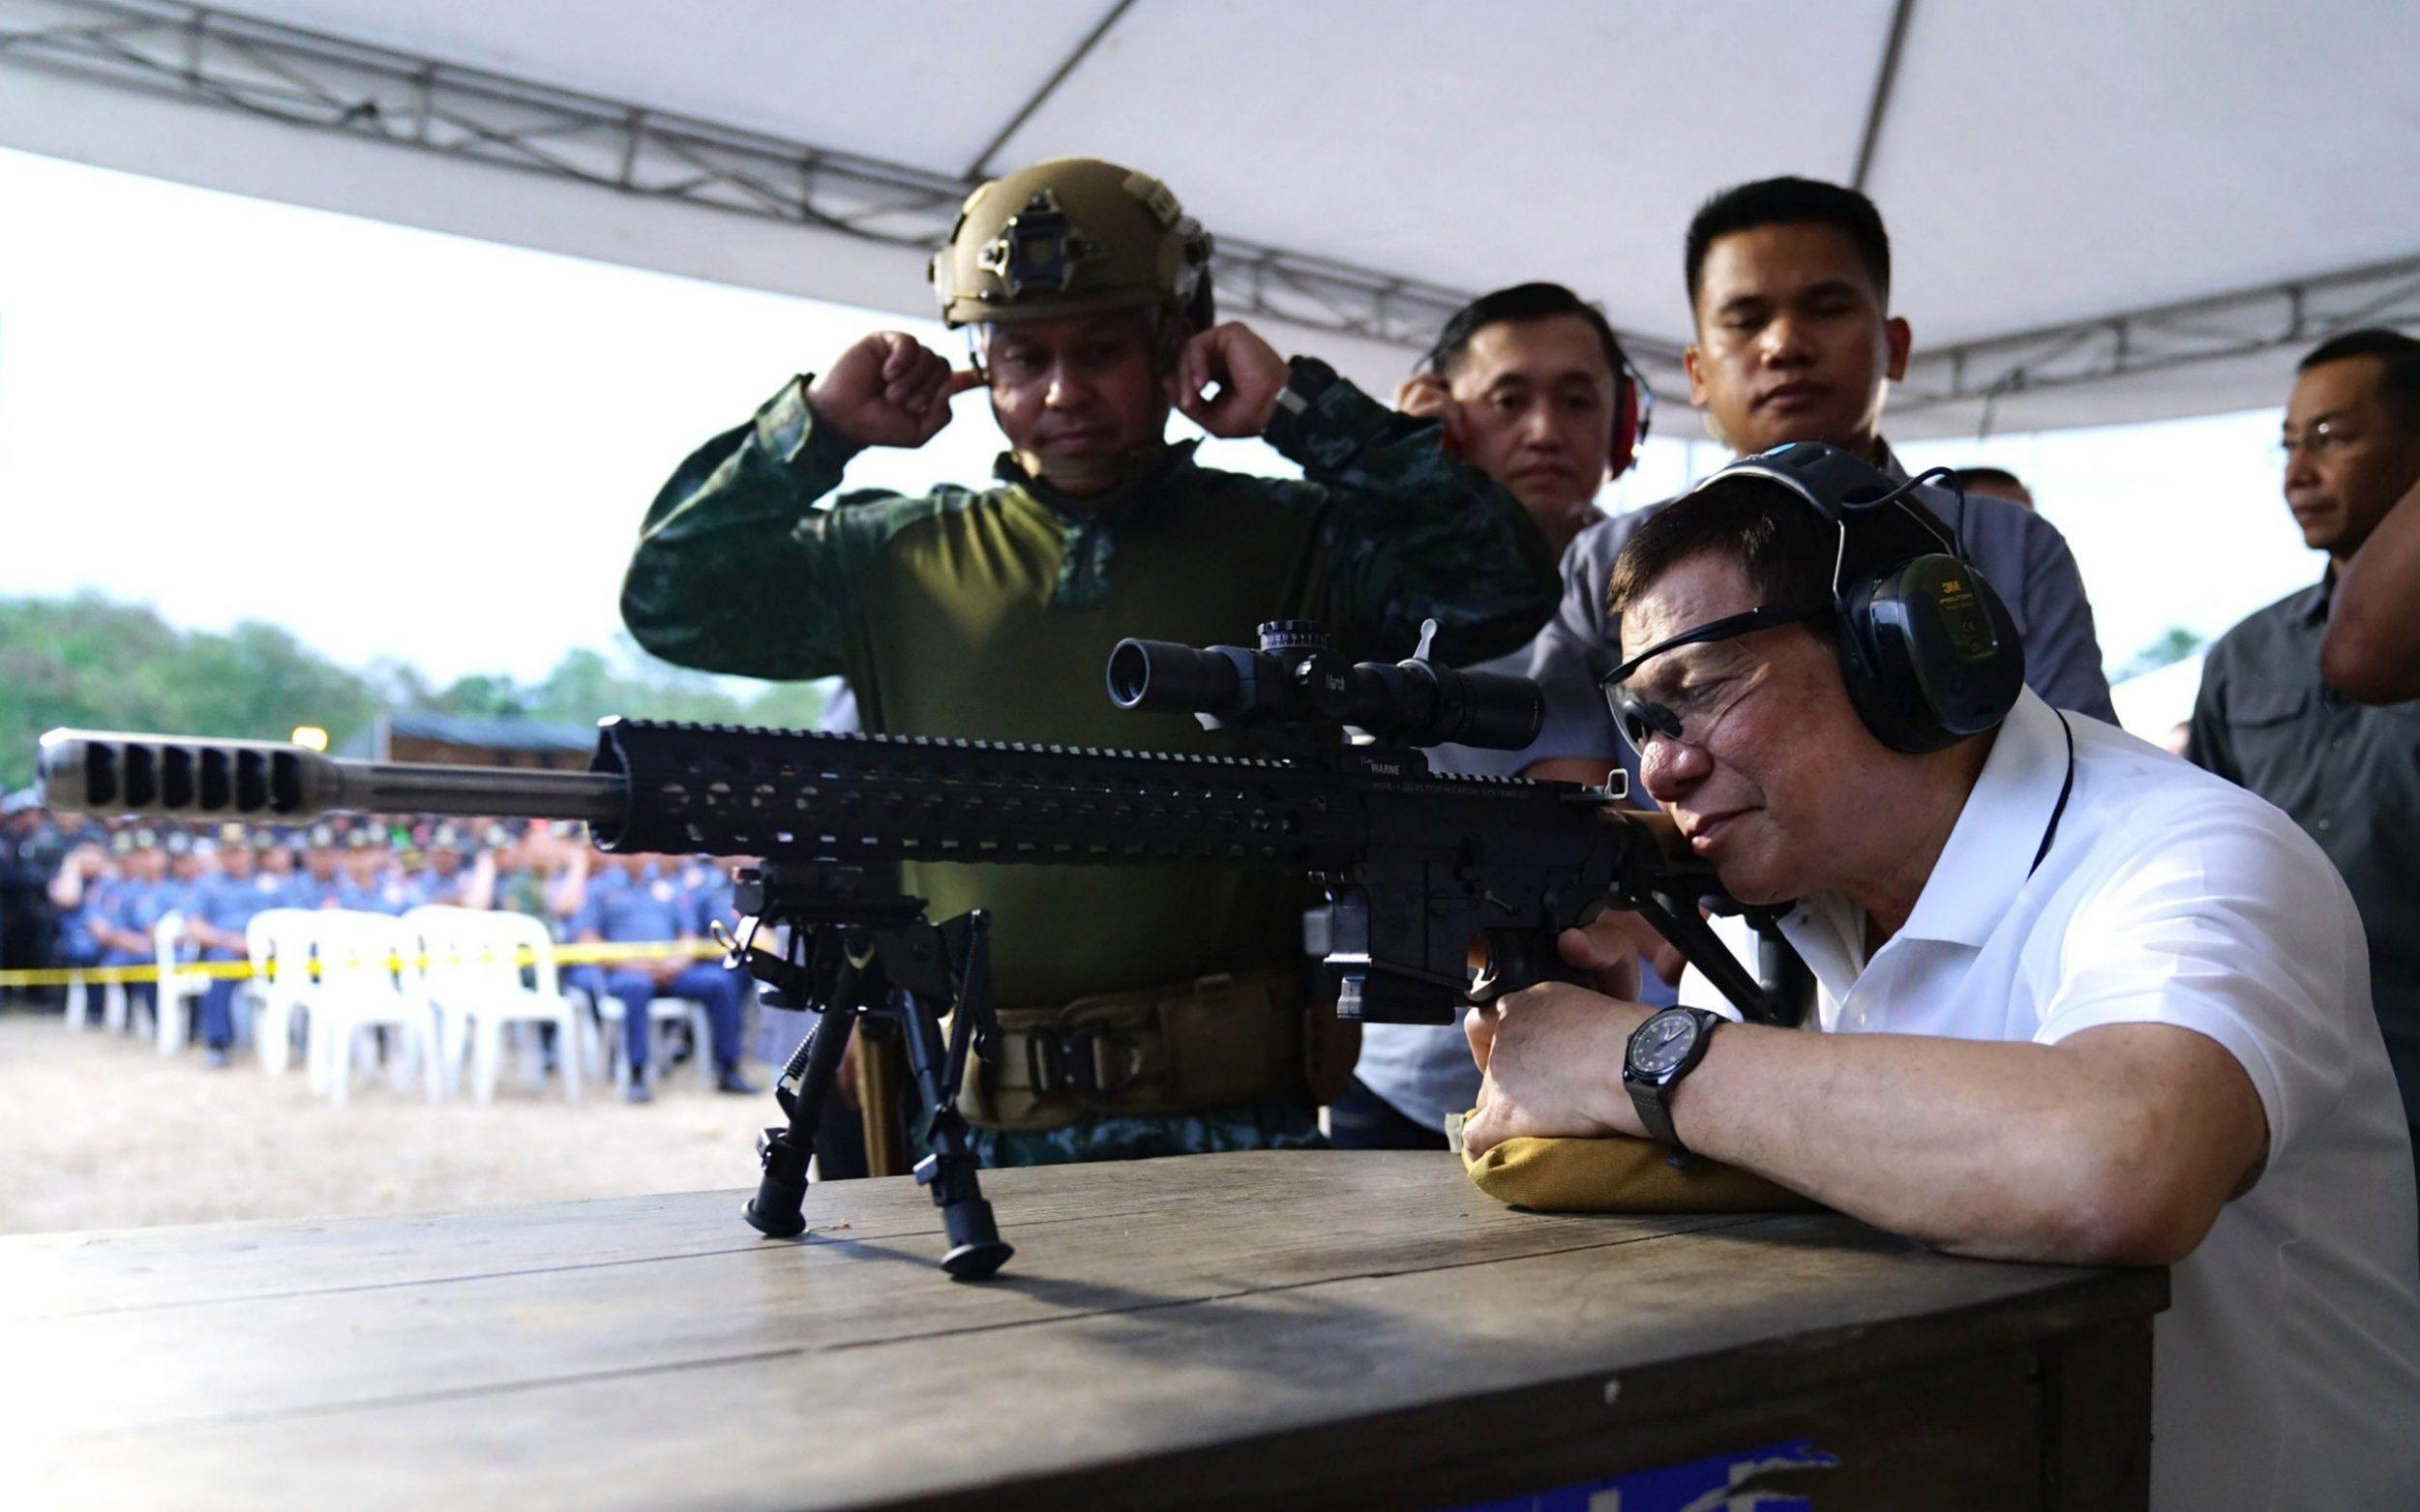 Duterte goes to war with UN as he threatens to throw rights team to crocodiles